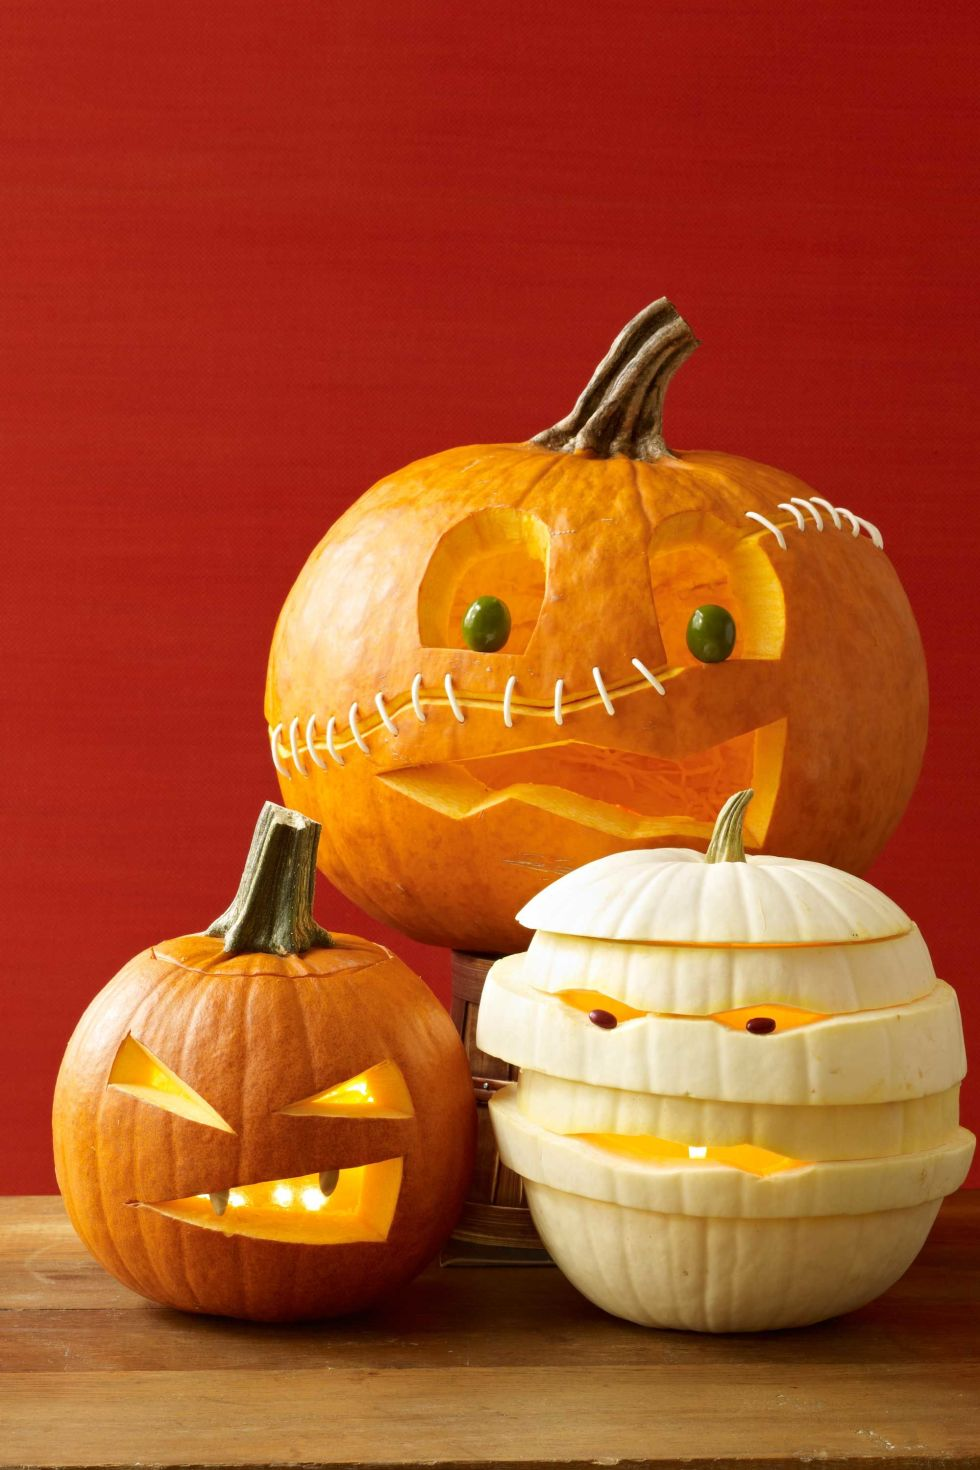 Quirky Pumpkin Carving Ideas